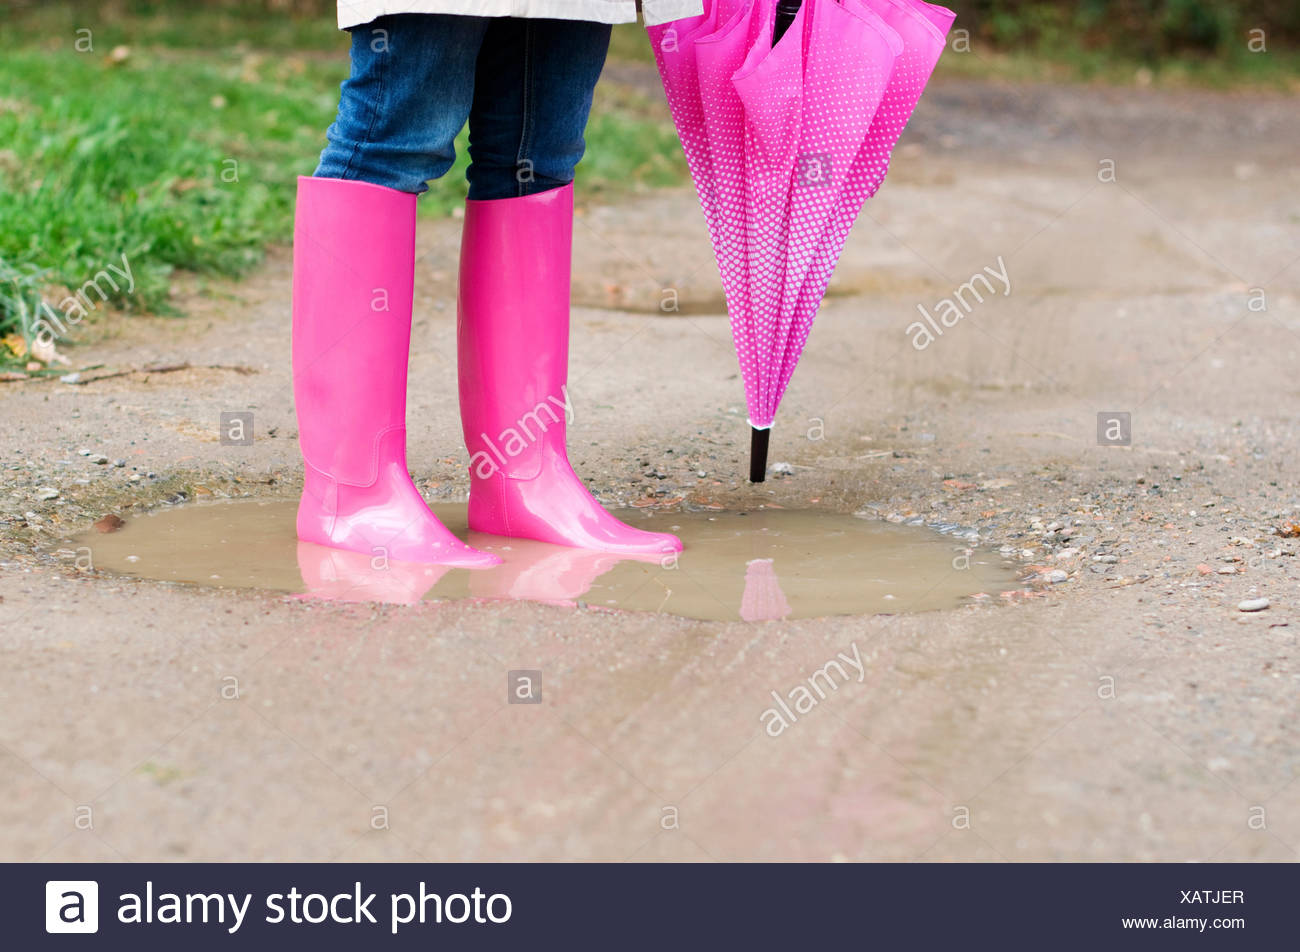 Young woman standing in puddle, Debica, Poland. - Stock Image